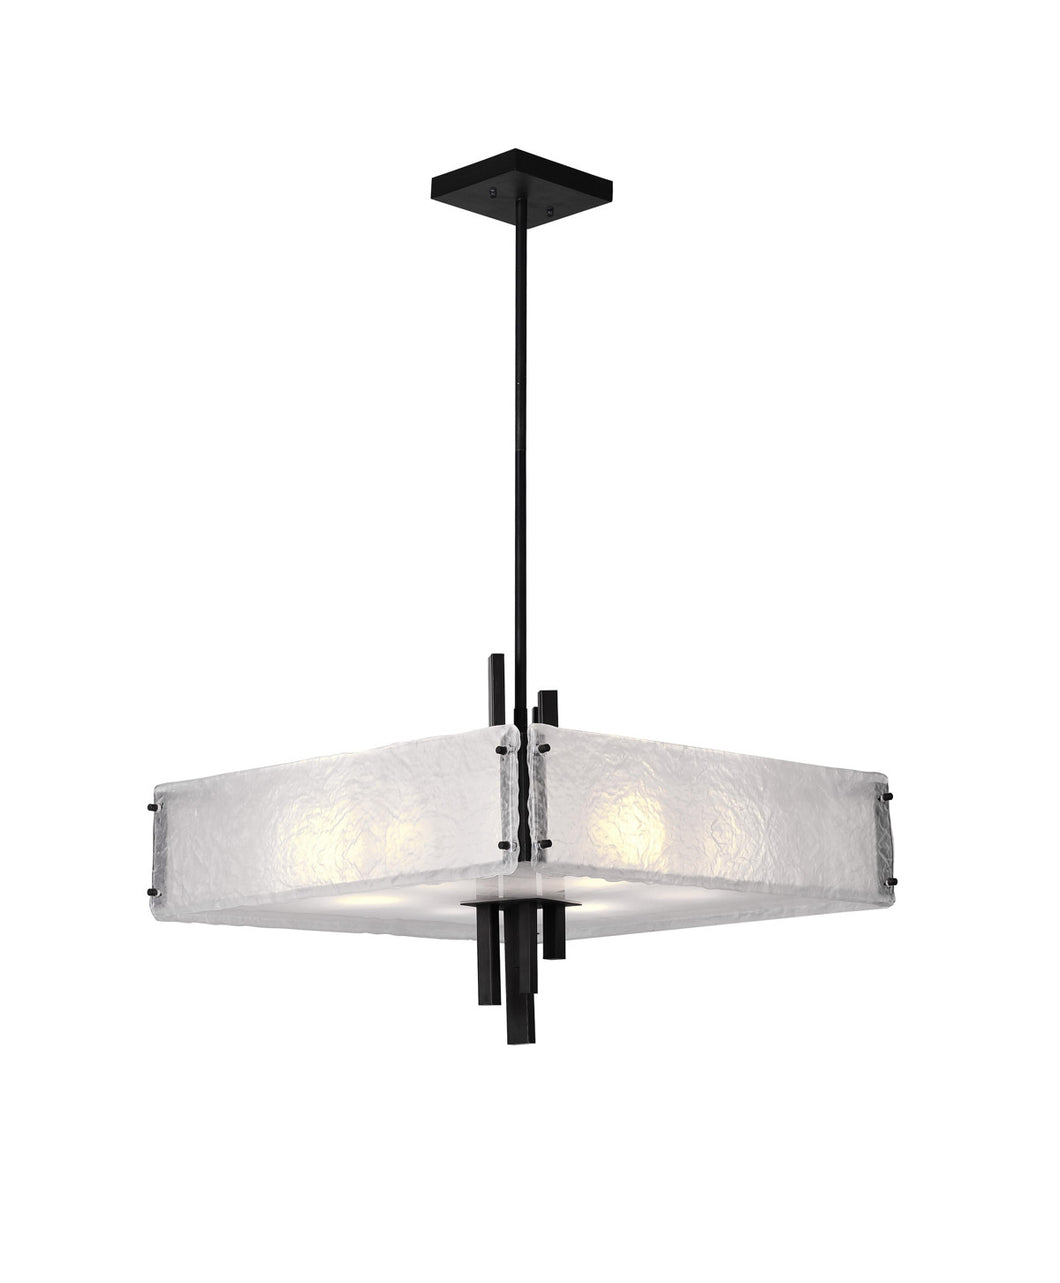 10 Light Chandelier with Black Finish